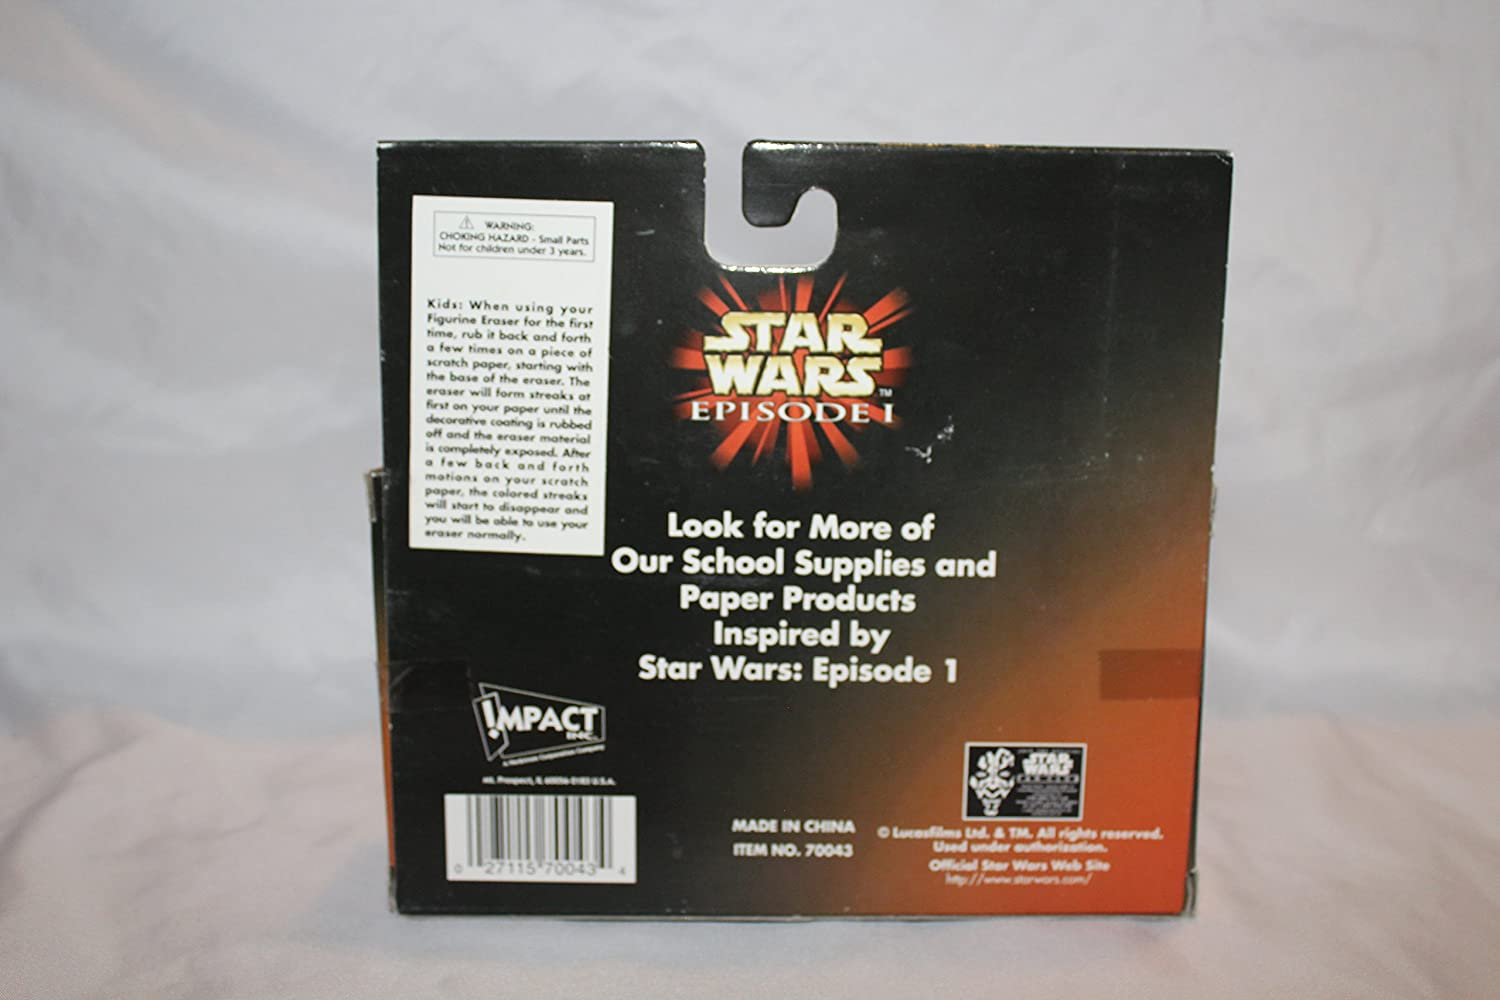 Amazon.com: Star Wars Episode 1 Figurine Erasers 3 Pack with Watto, Darth Maul and Sebulba the Pod Racer: Toys & Games